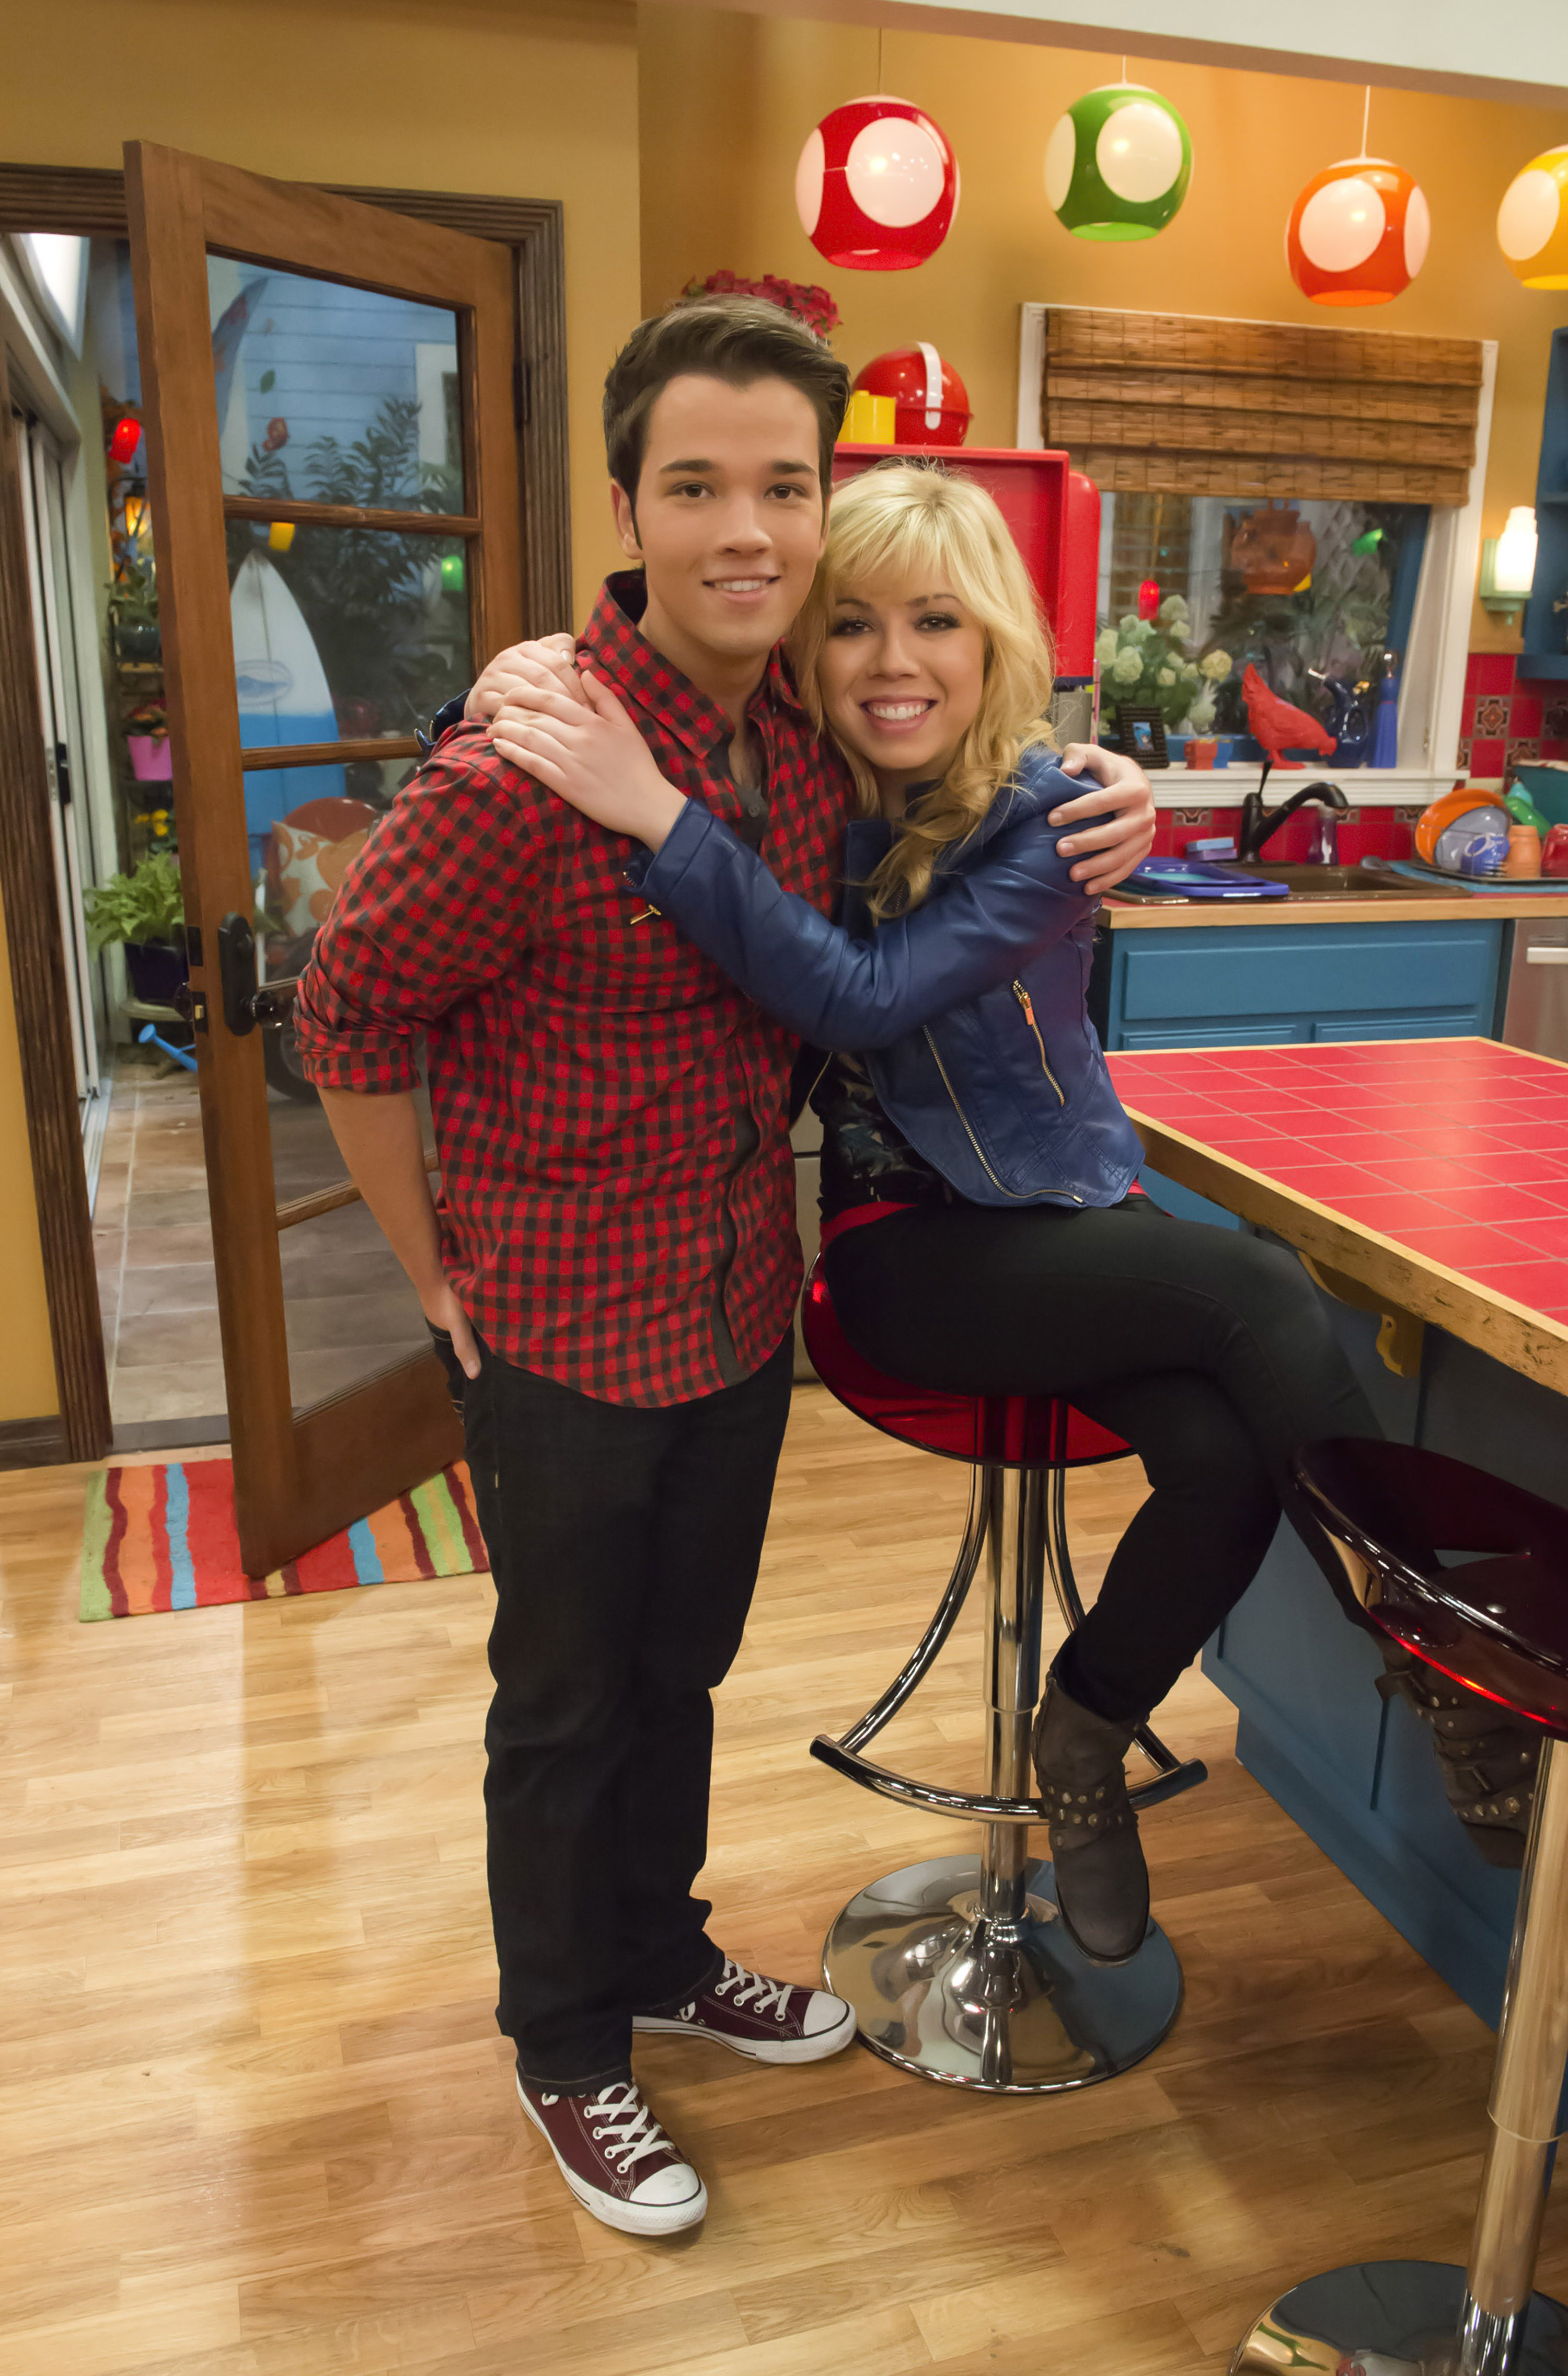 Jennette Mccurdy And Nathan Kress: Jennette McCurdy, Nathan Kress